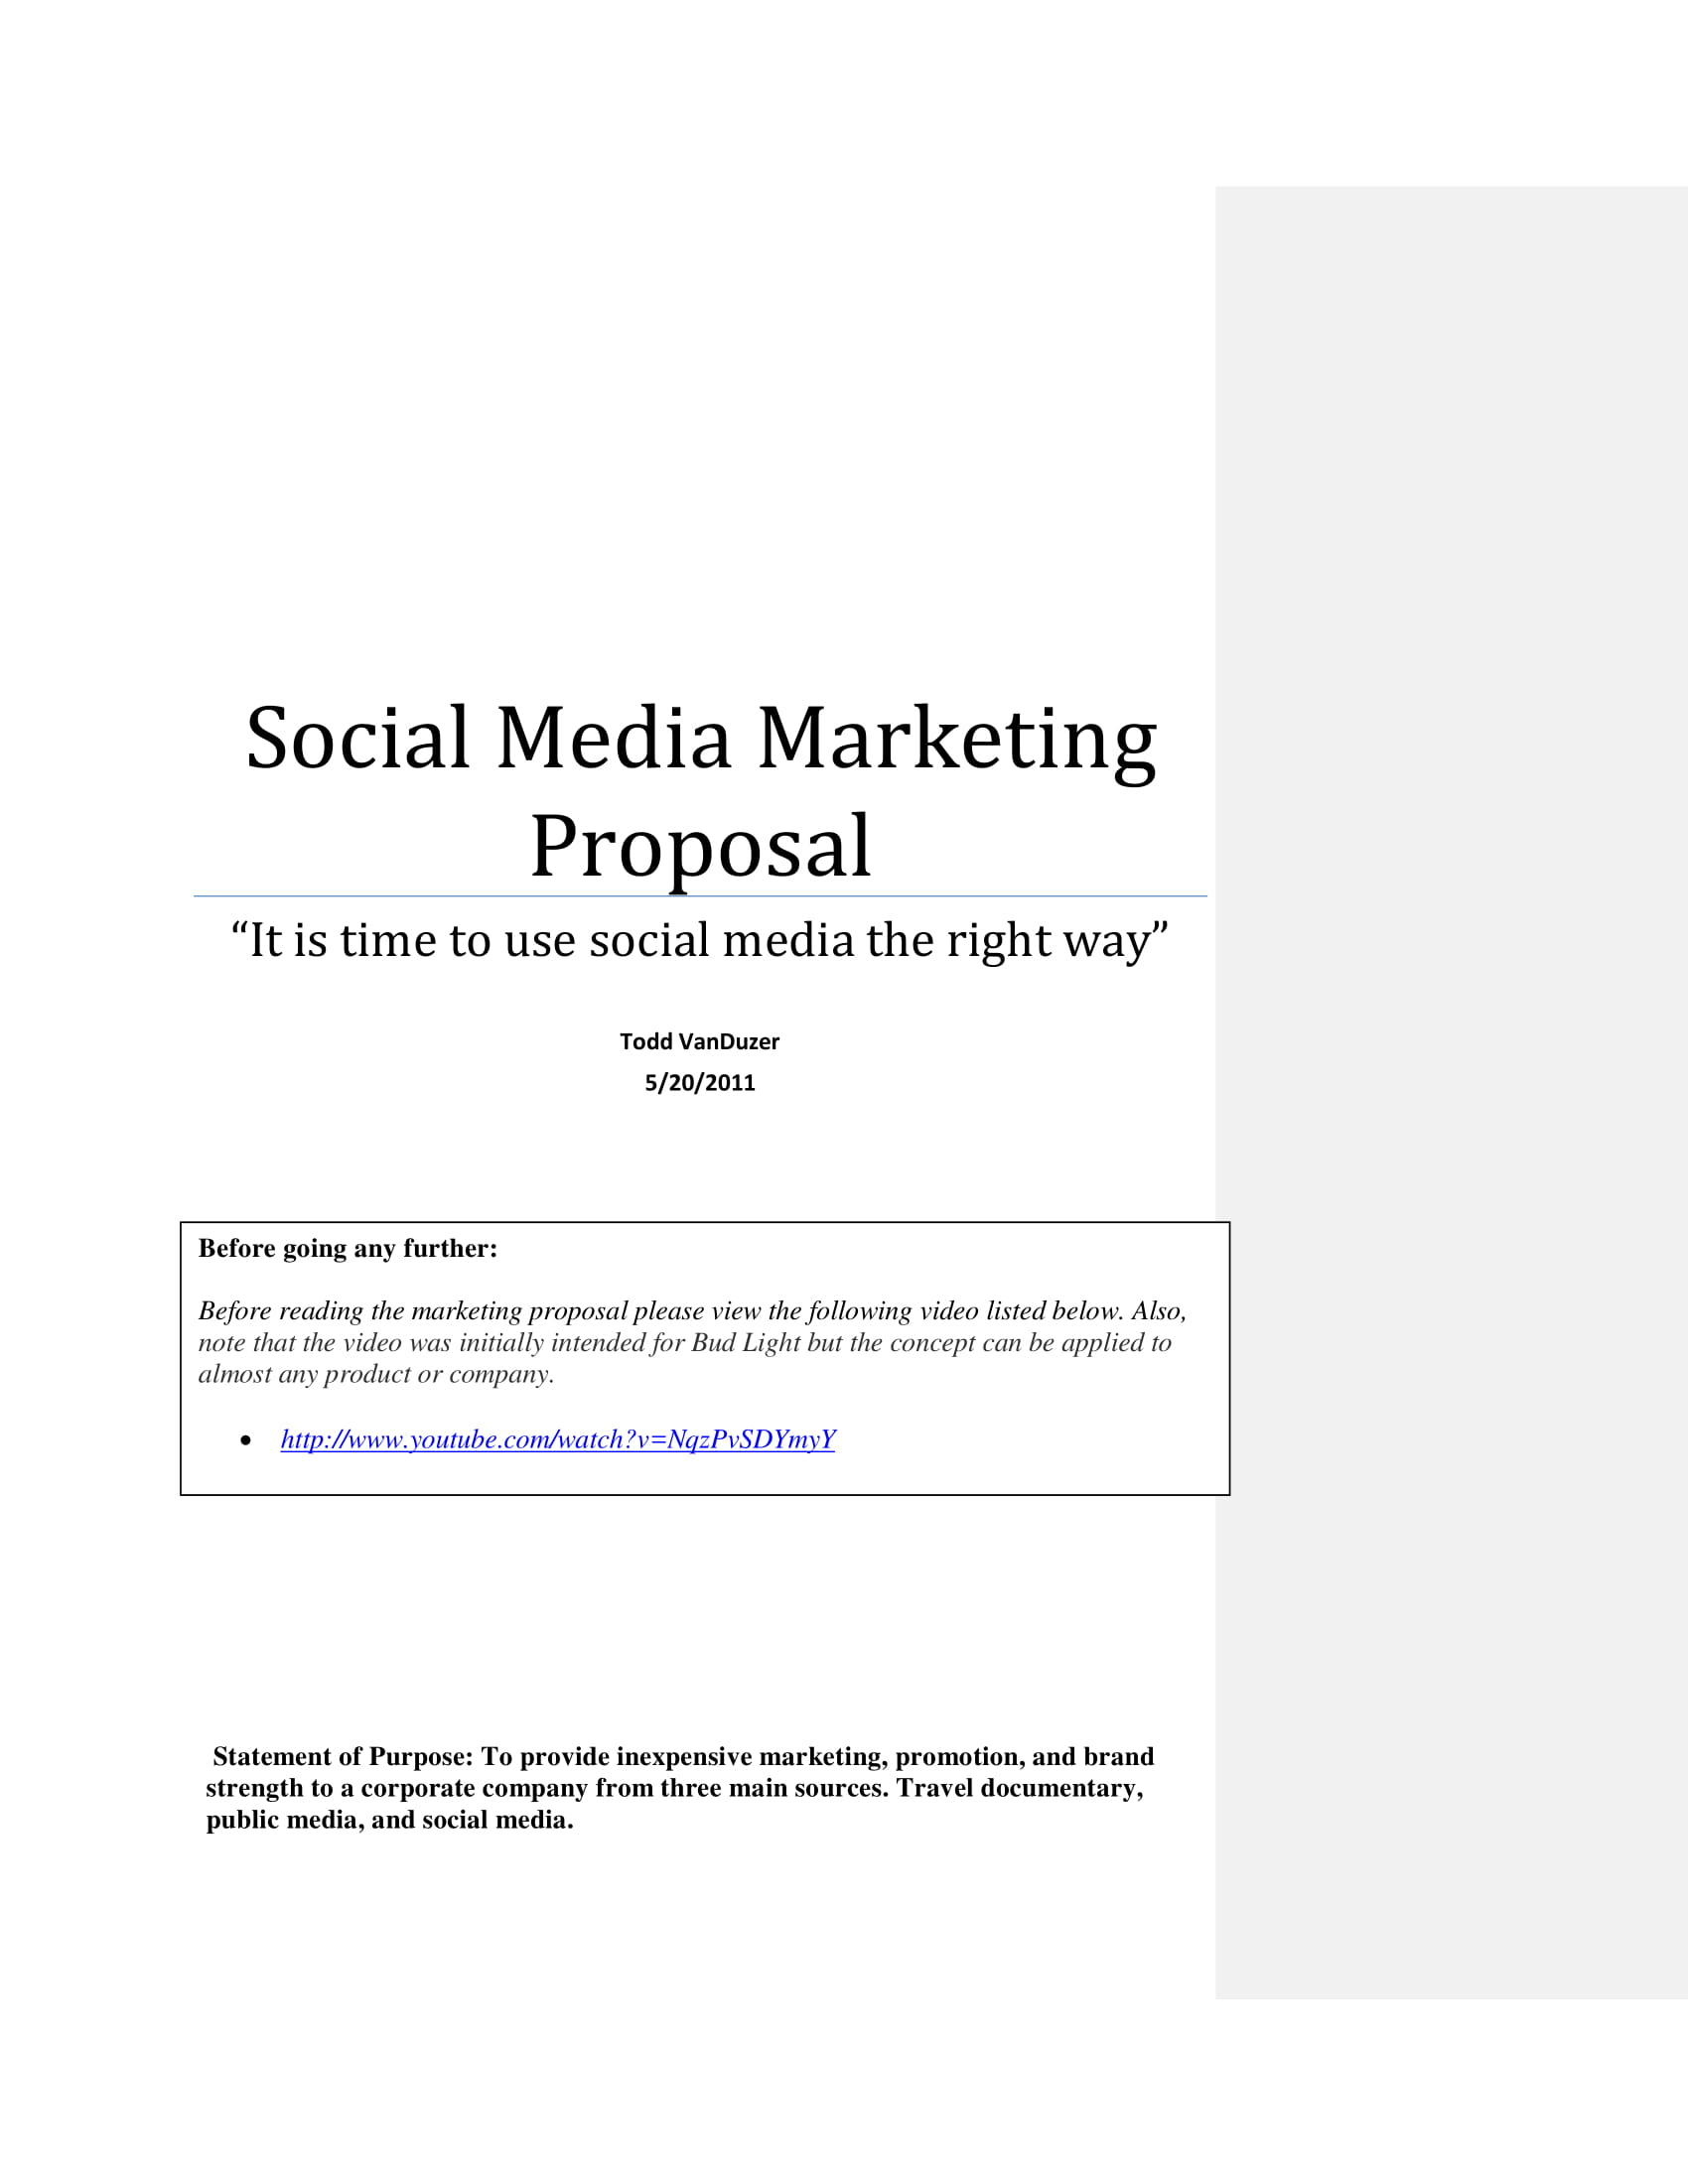 social media marketing proposal for restaurant business guide example 01